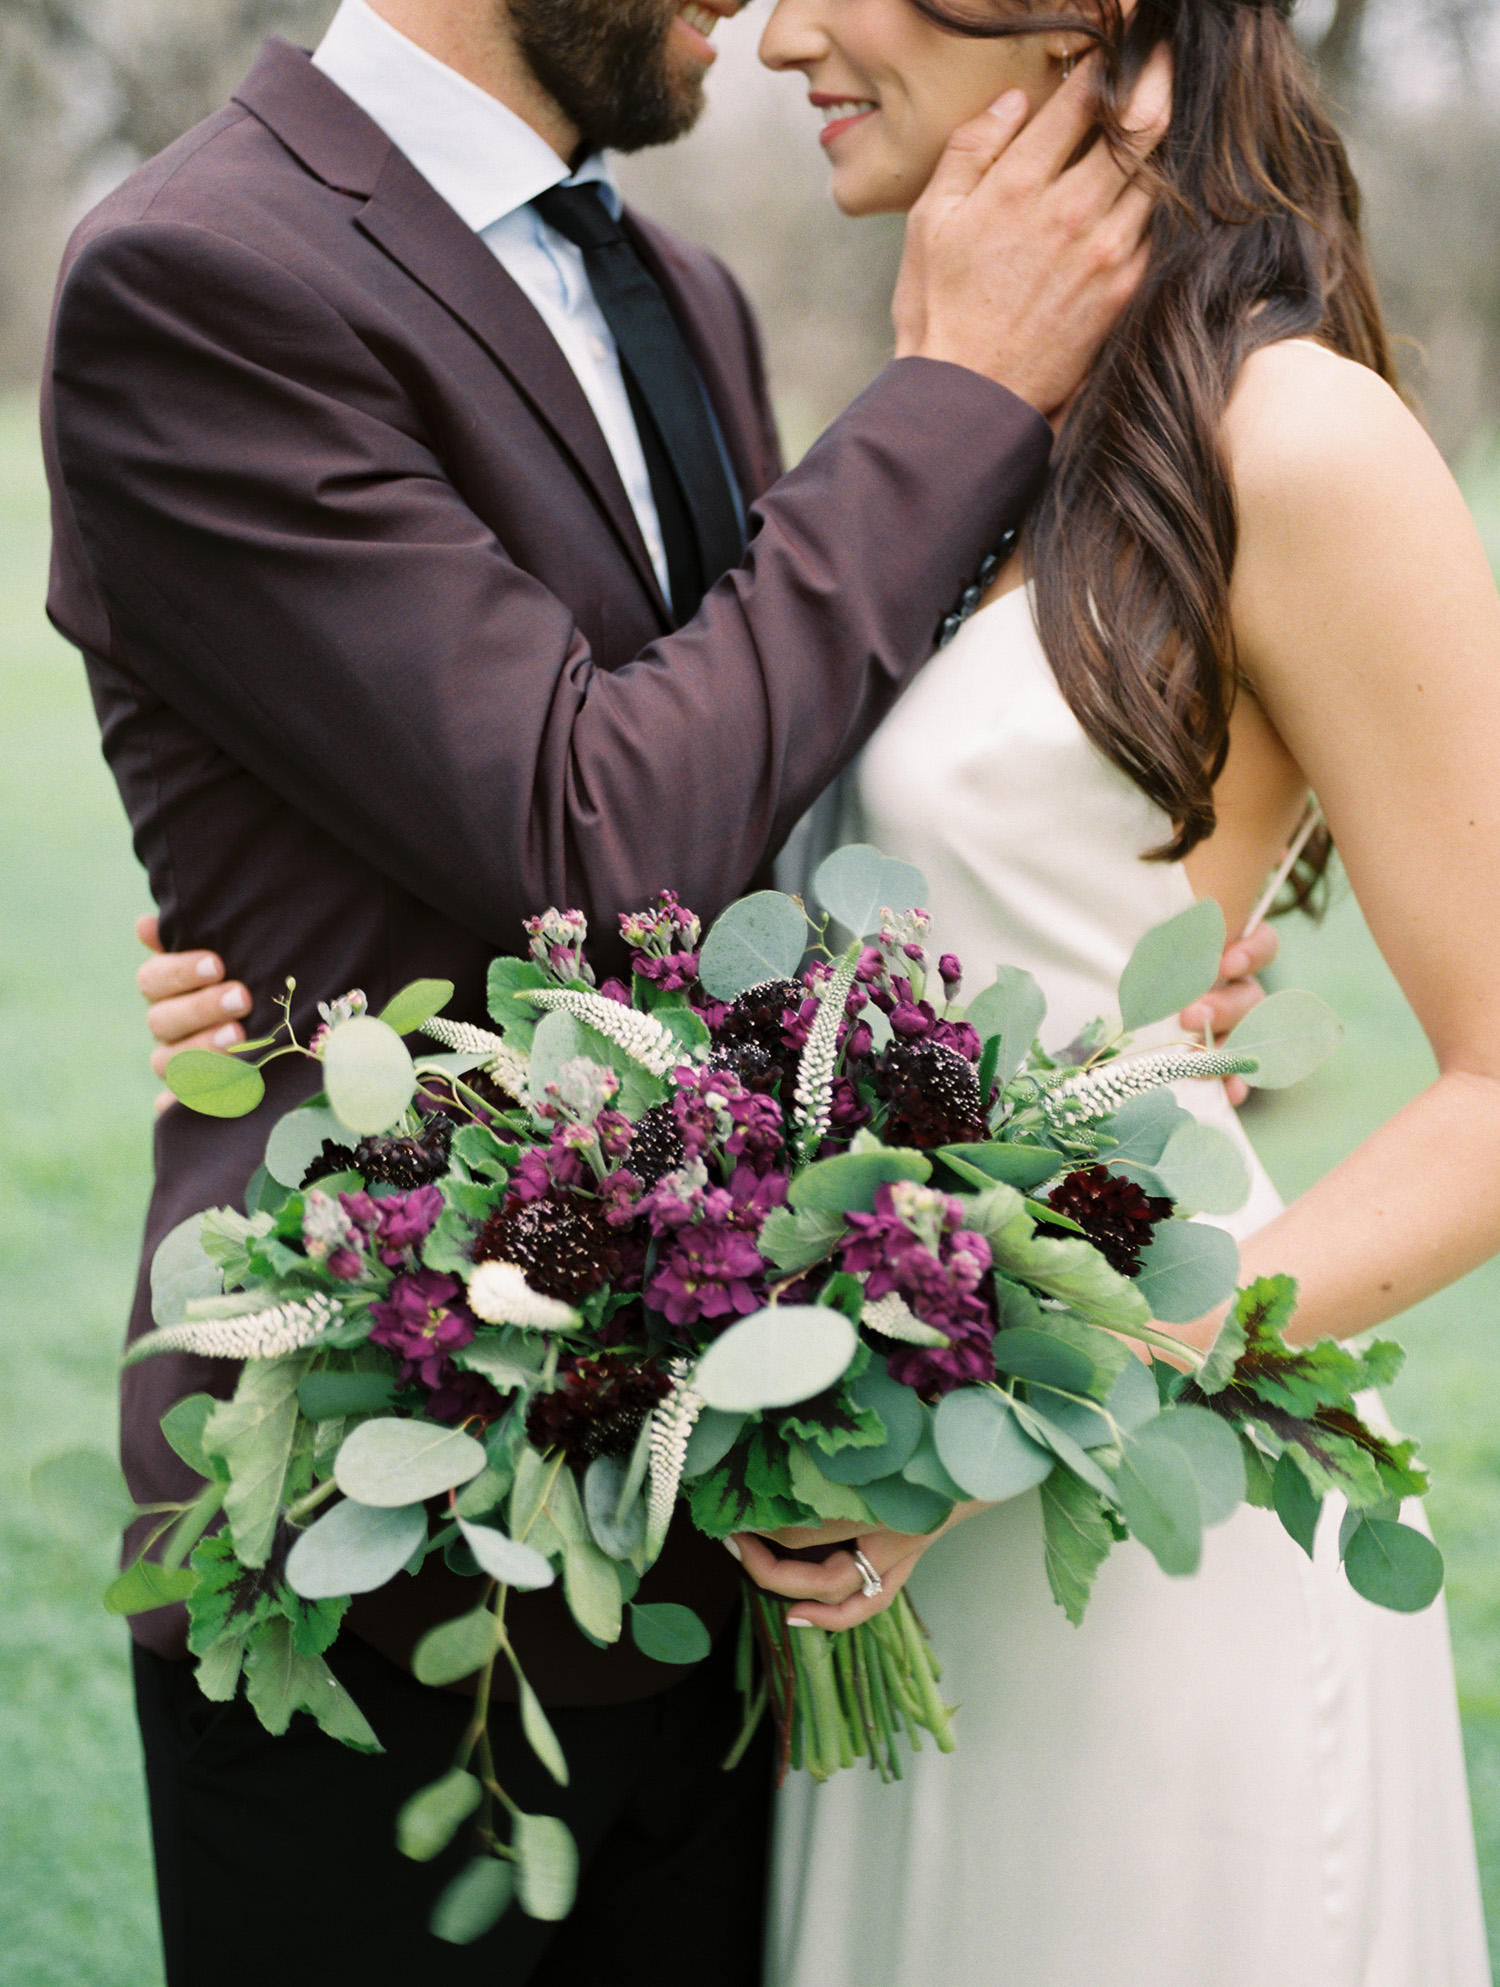 Stunning purple and white bouquet with tons of greenery by Butterfly Petals!